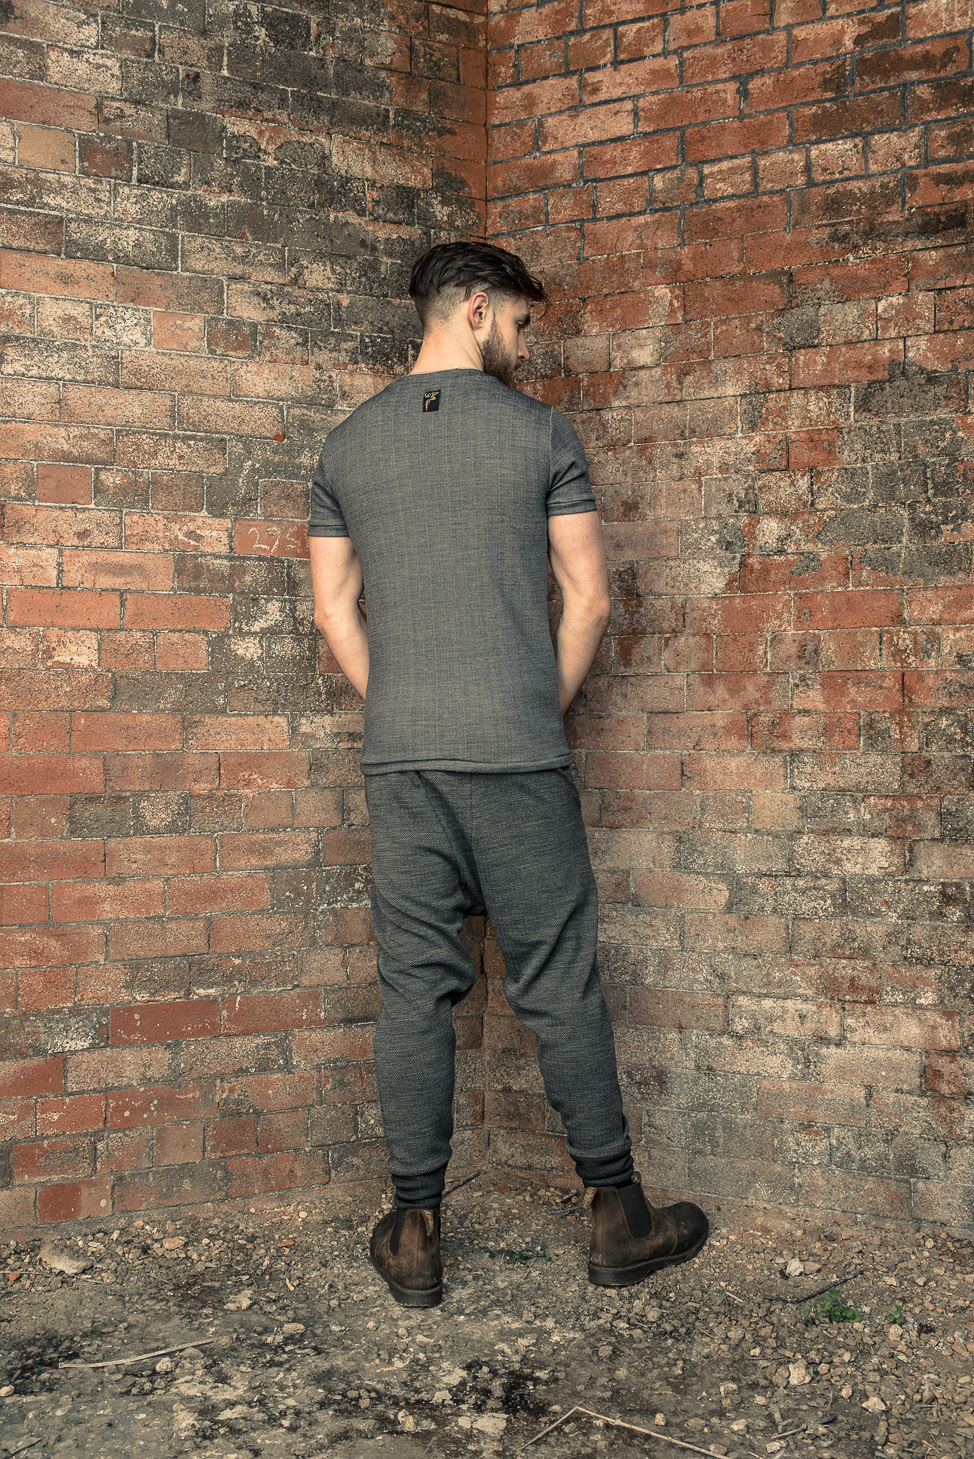 zaramia-ava-zaramiaava-leeds-fashion-designer-ethical-sustainable-tailored-minimalist-fitted-versatile-drape-koji-grey-tshirt-top-hareem-trousers-black-grey-texture-styling-menswear-model-19